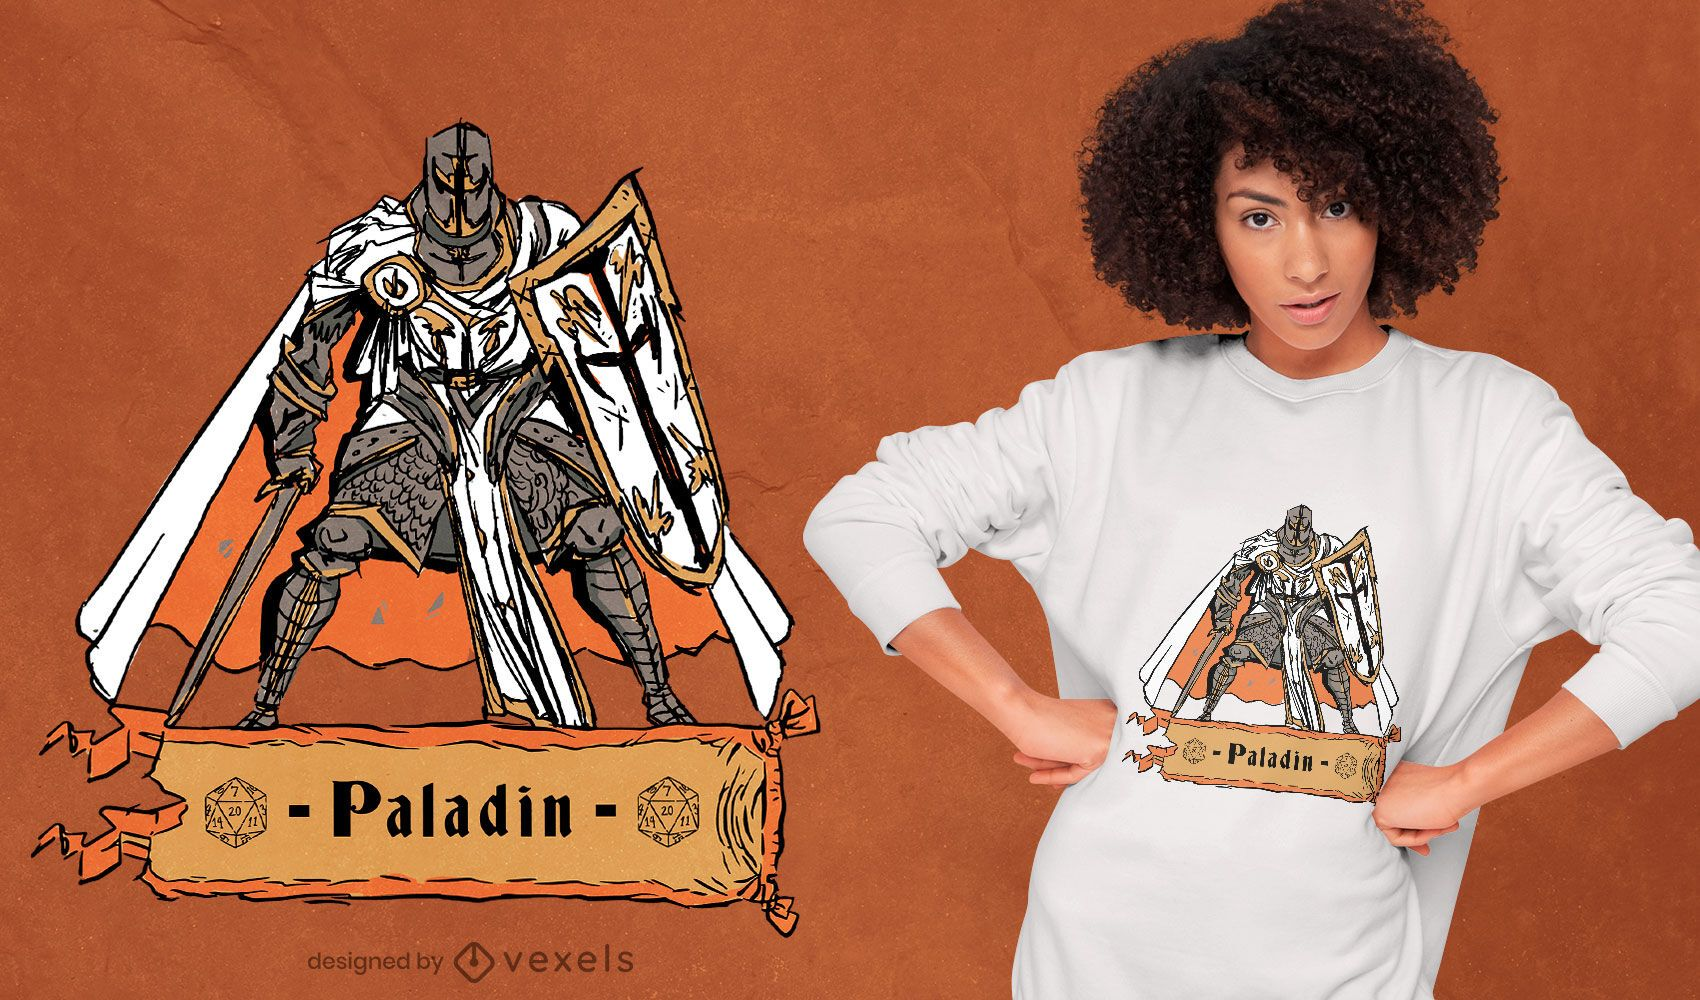 Paladin role playing character t-shirt design